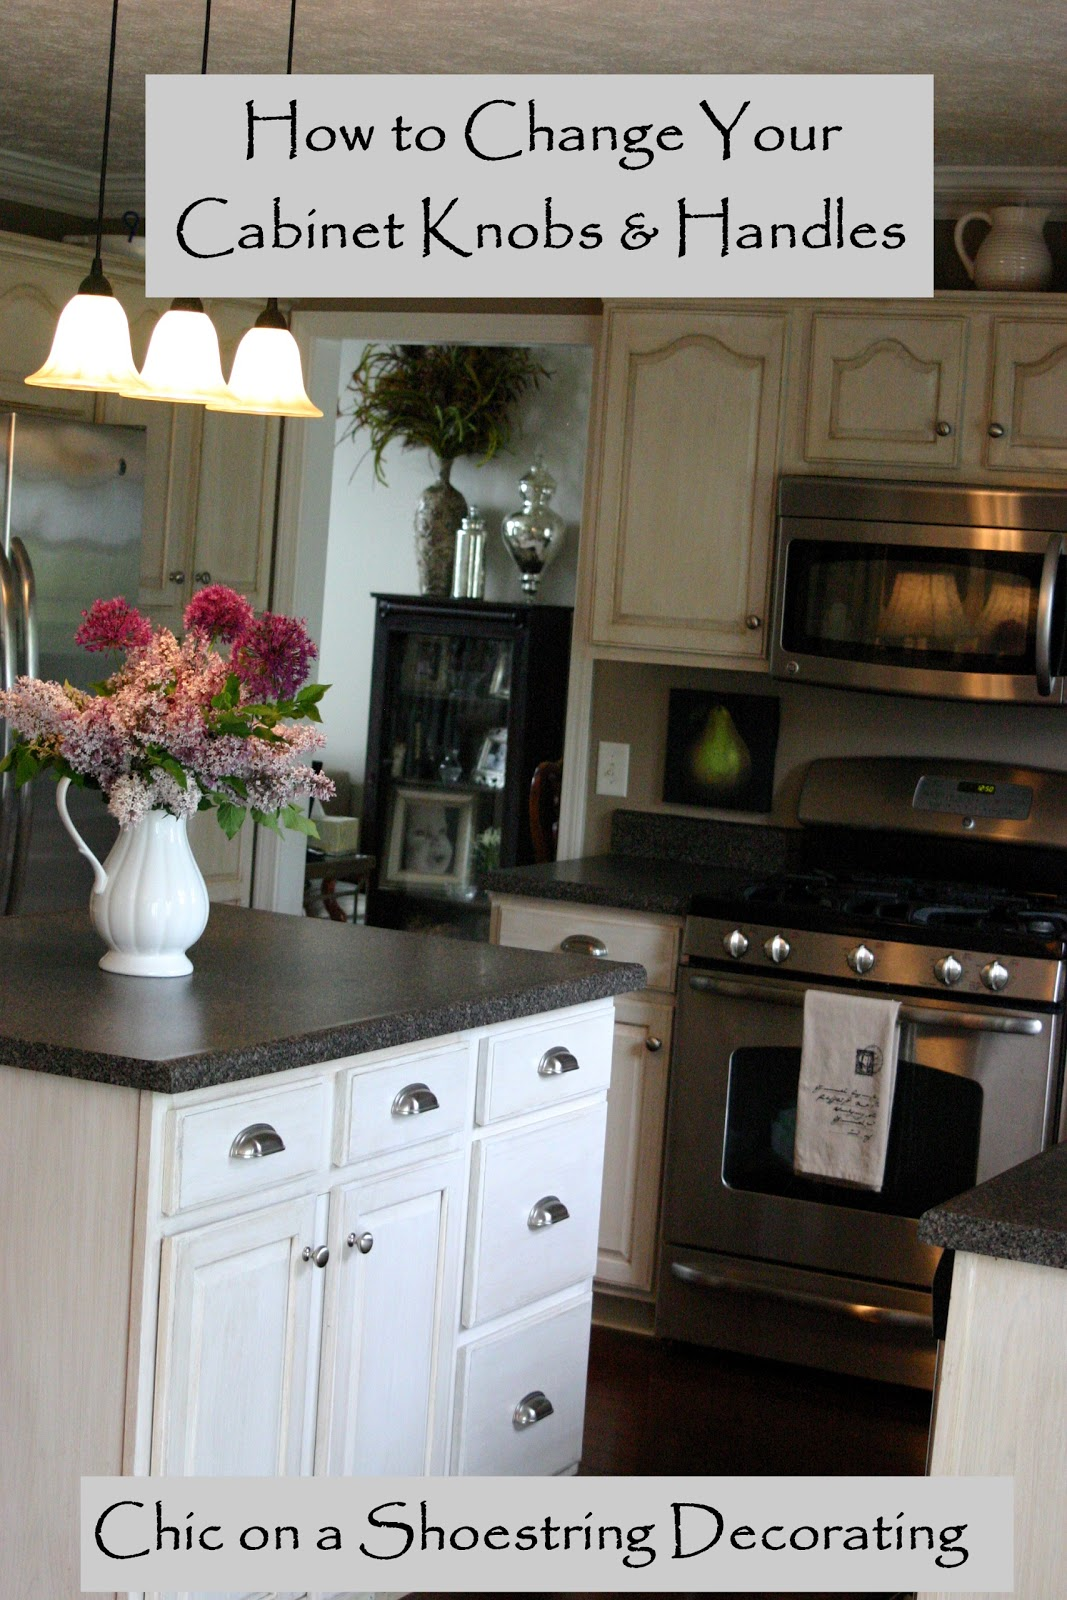 how to change your kitchen cabinet kitchen cabinets knobs glazed kitchen cabinets